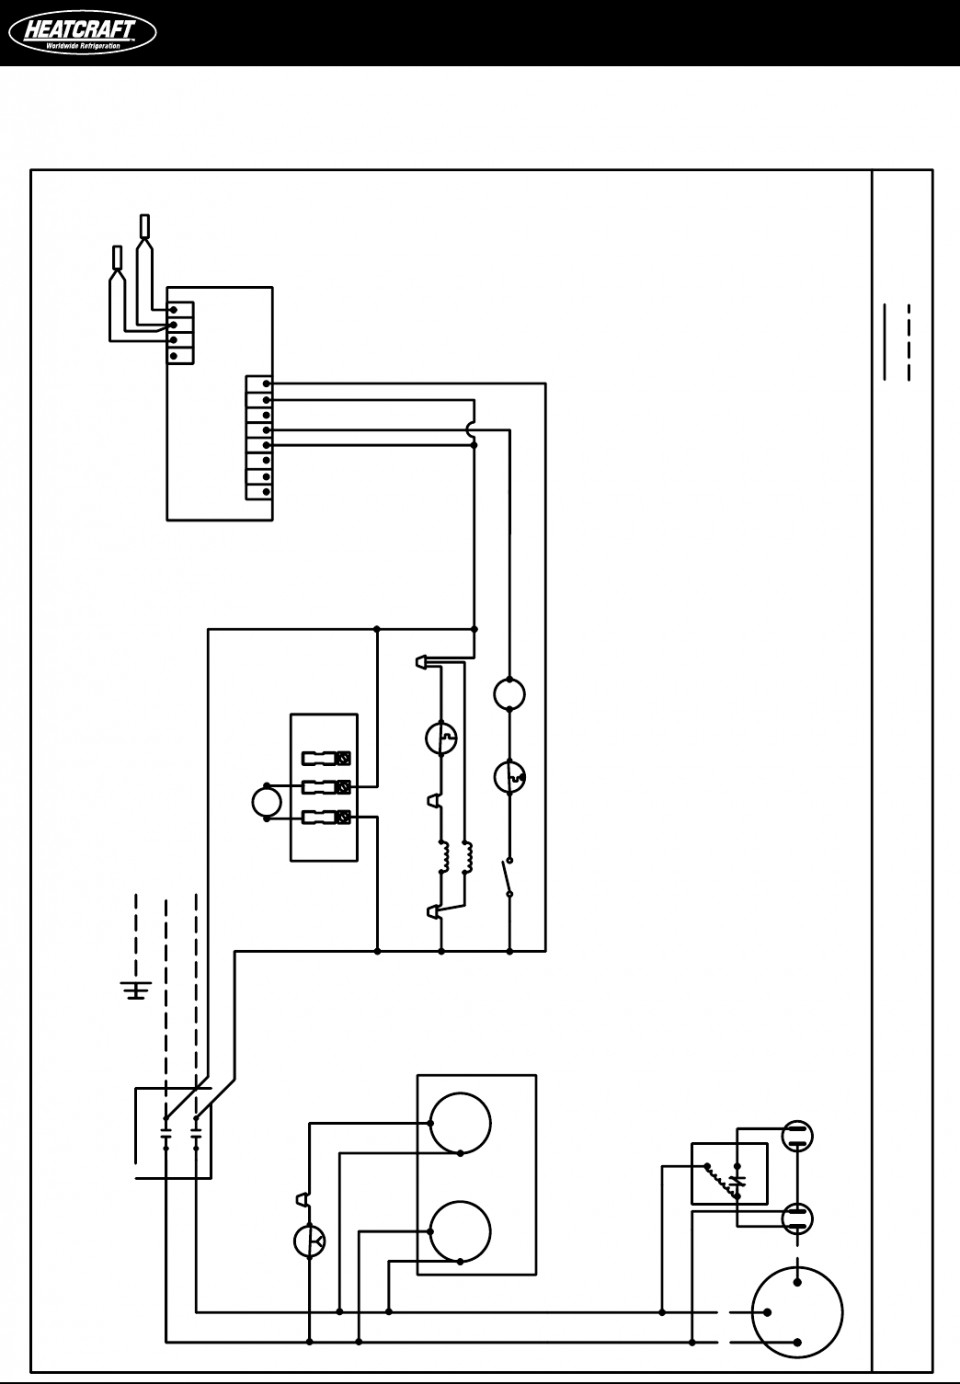 bohn walk in freezer wiring diagram Collection-heatcraft walk in freezer wiring diagram wiring diagram rh faceitsalon Alternating Relay Wiring Diagram 3-j